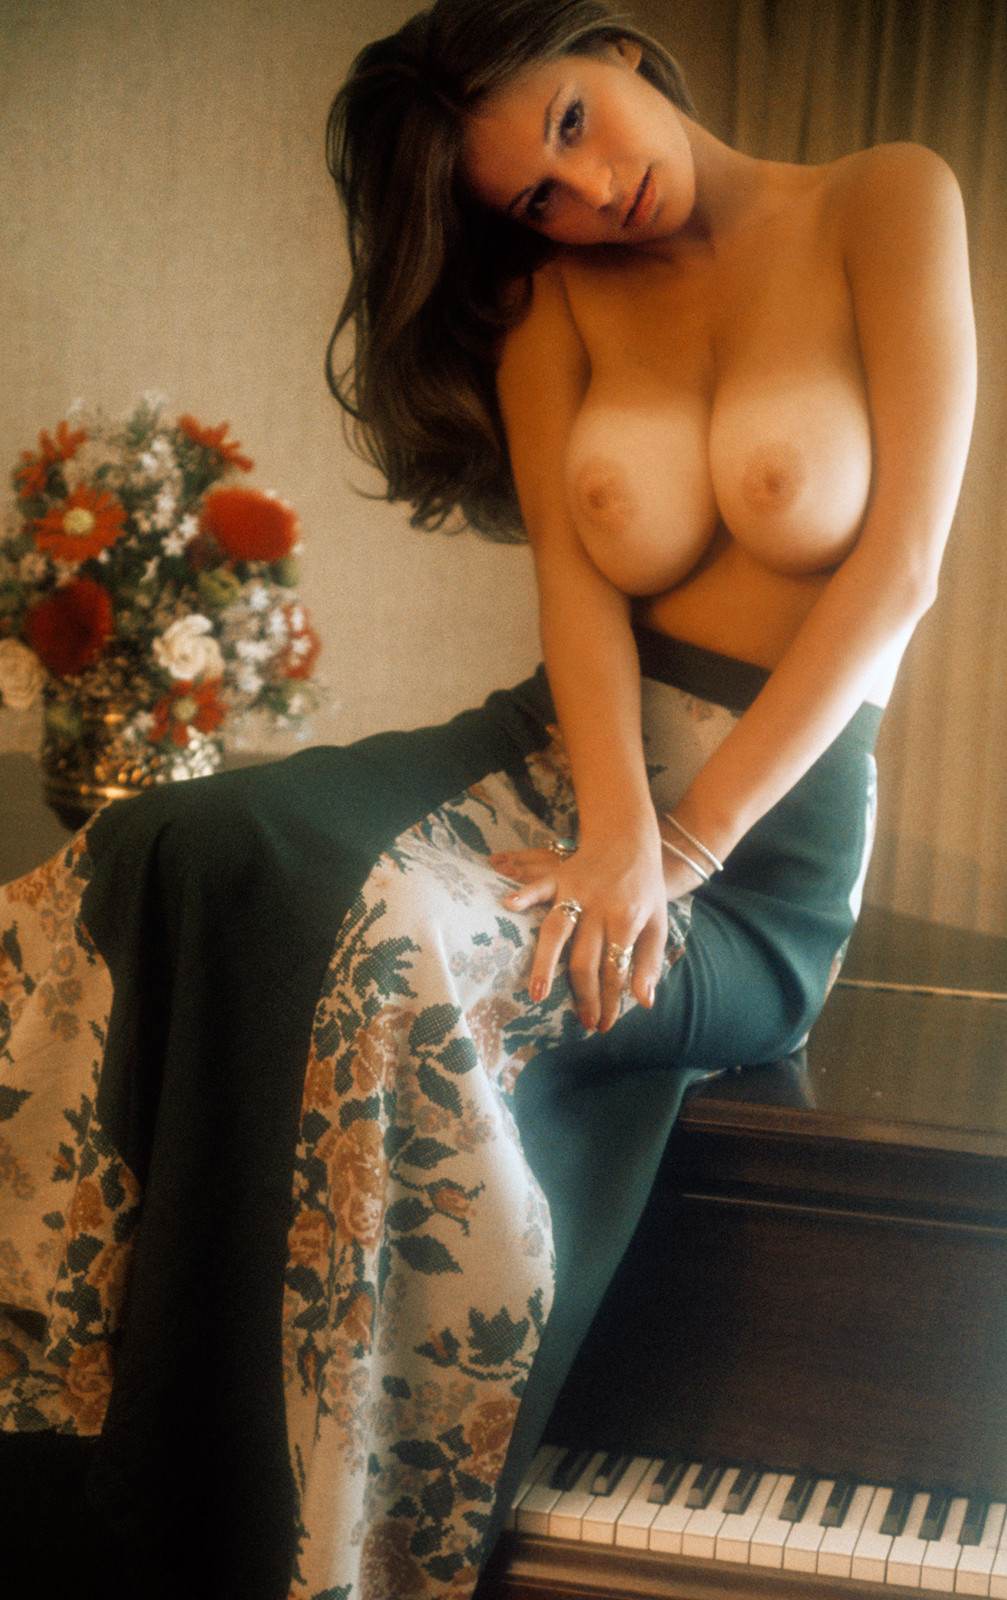 Leah russo nude with